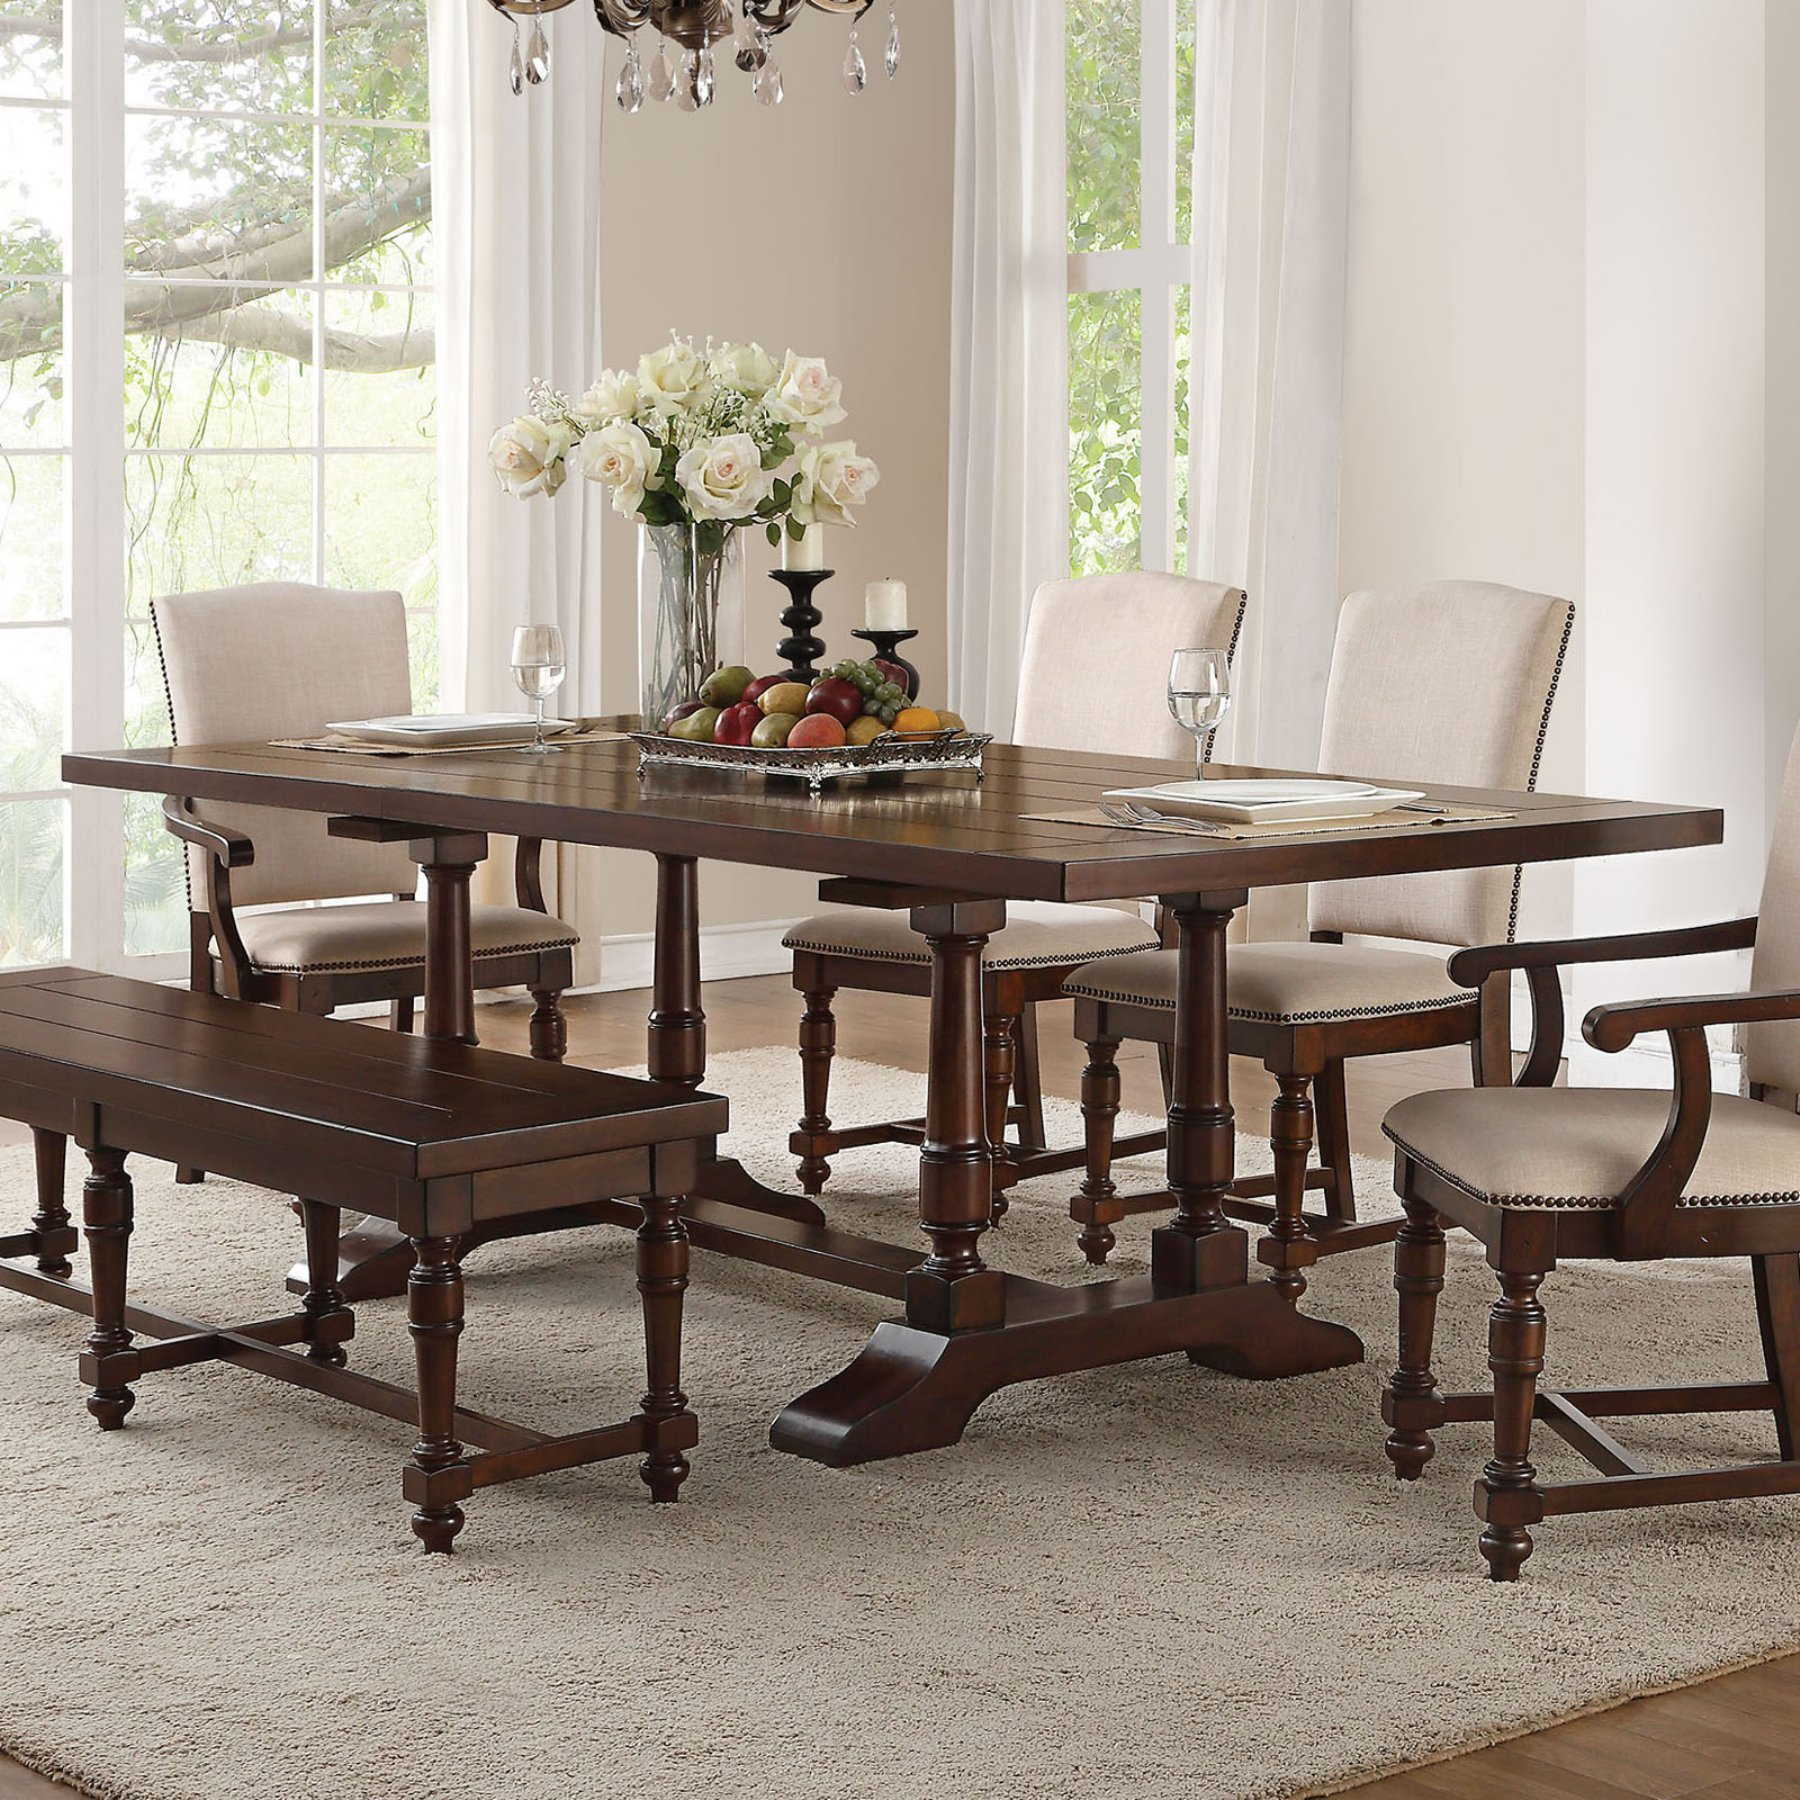 Acme Furniture Tanner Extension Dining Table  60830